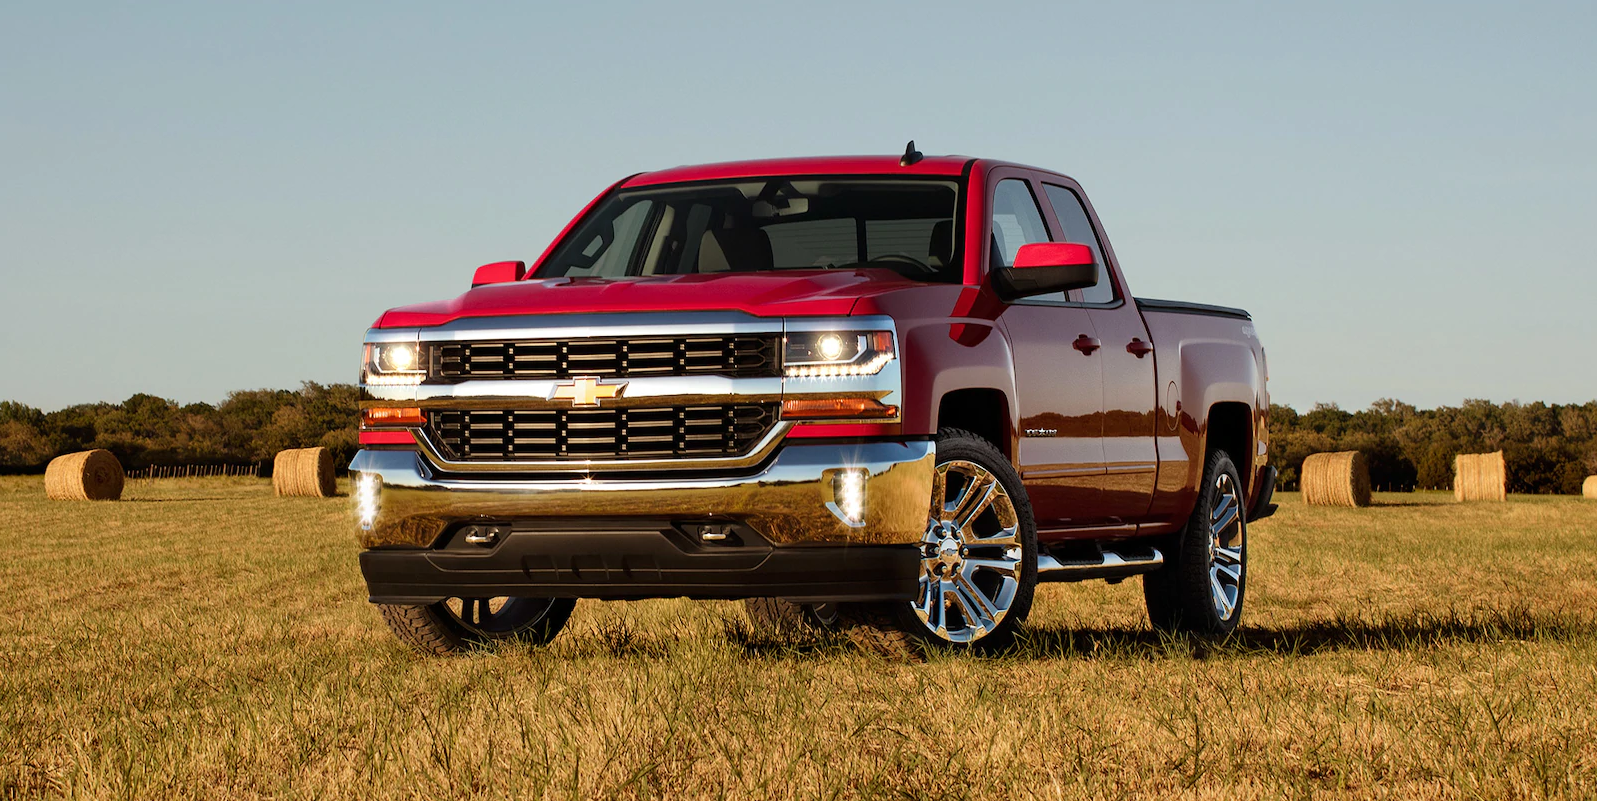 2019 Chevrolet Silverado 1500 LD Overview - The News Wheel